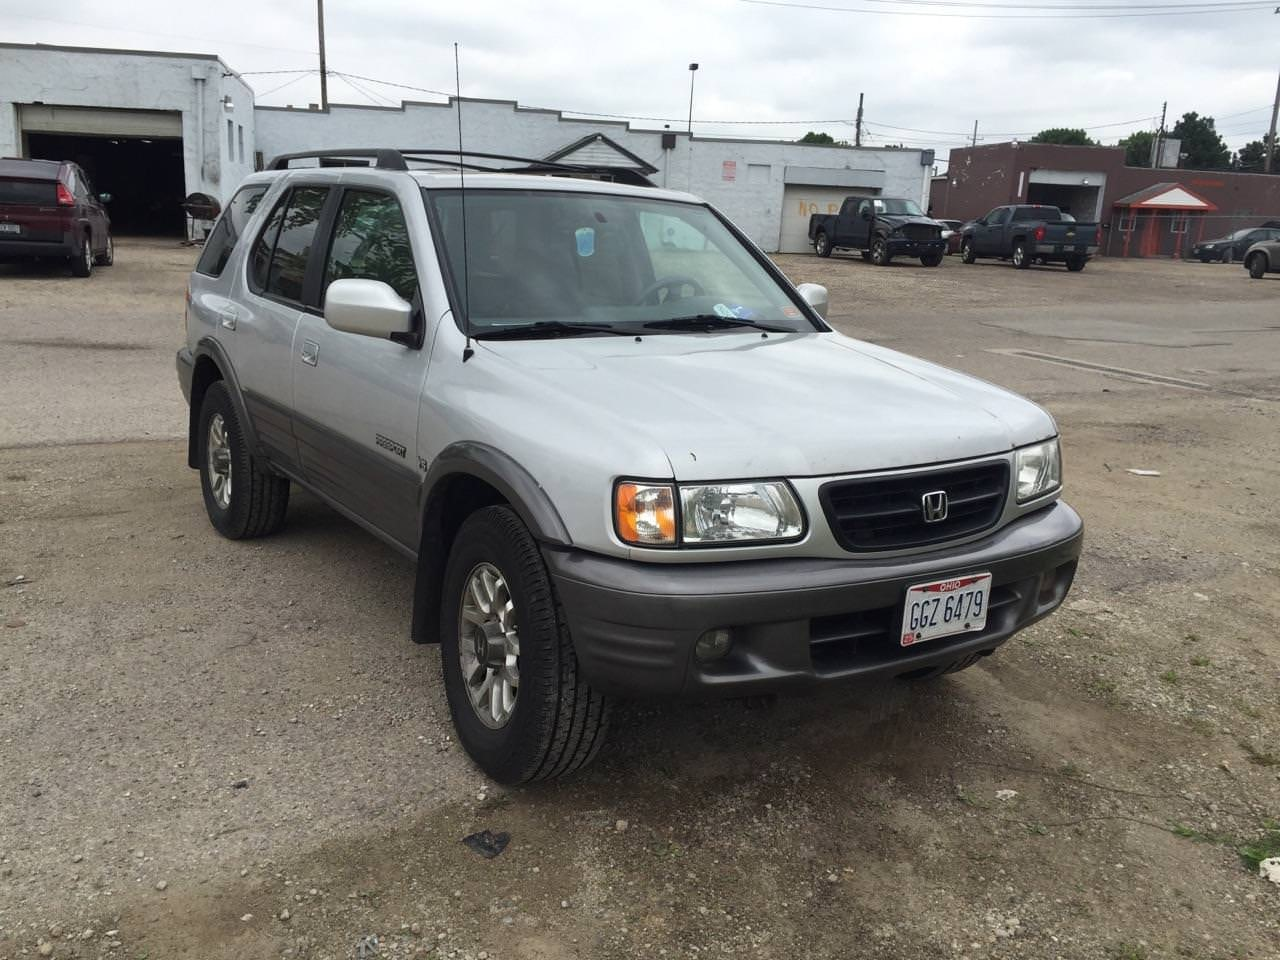 Junk 2002 Honda Passport in Columbus